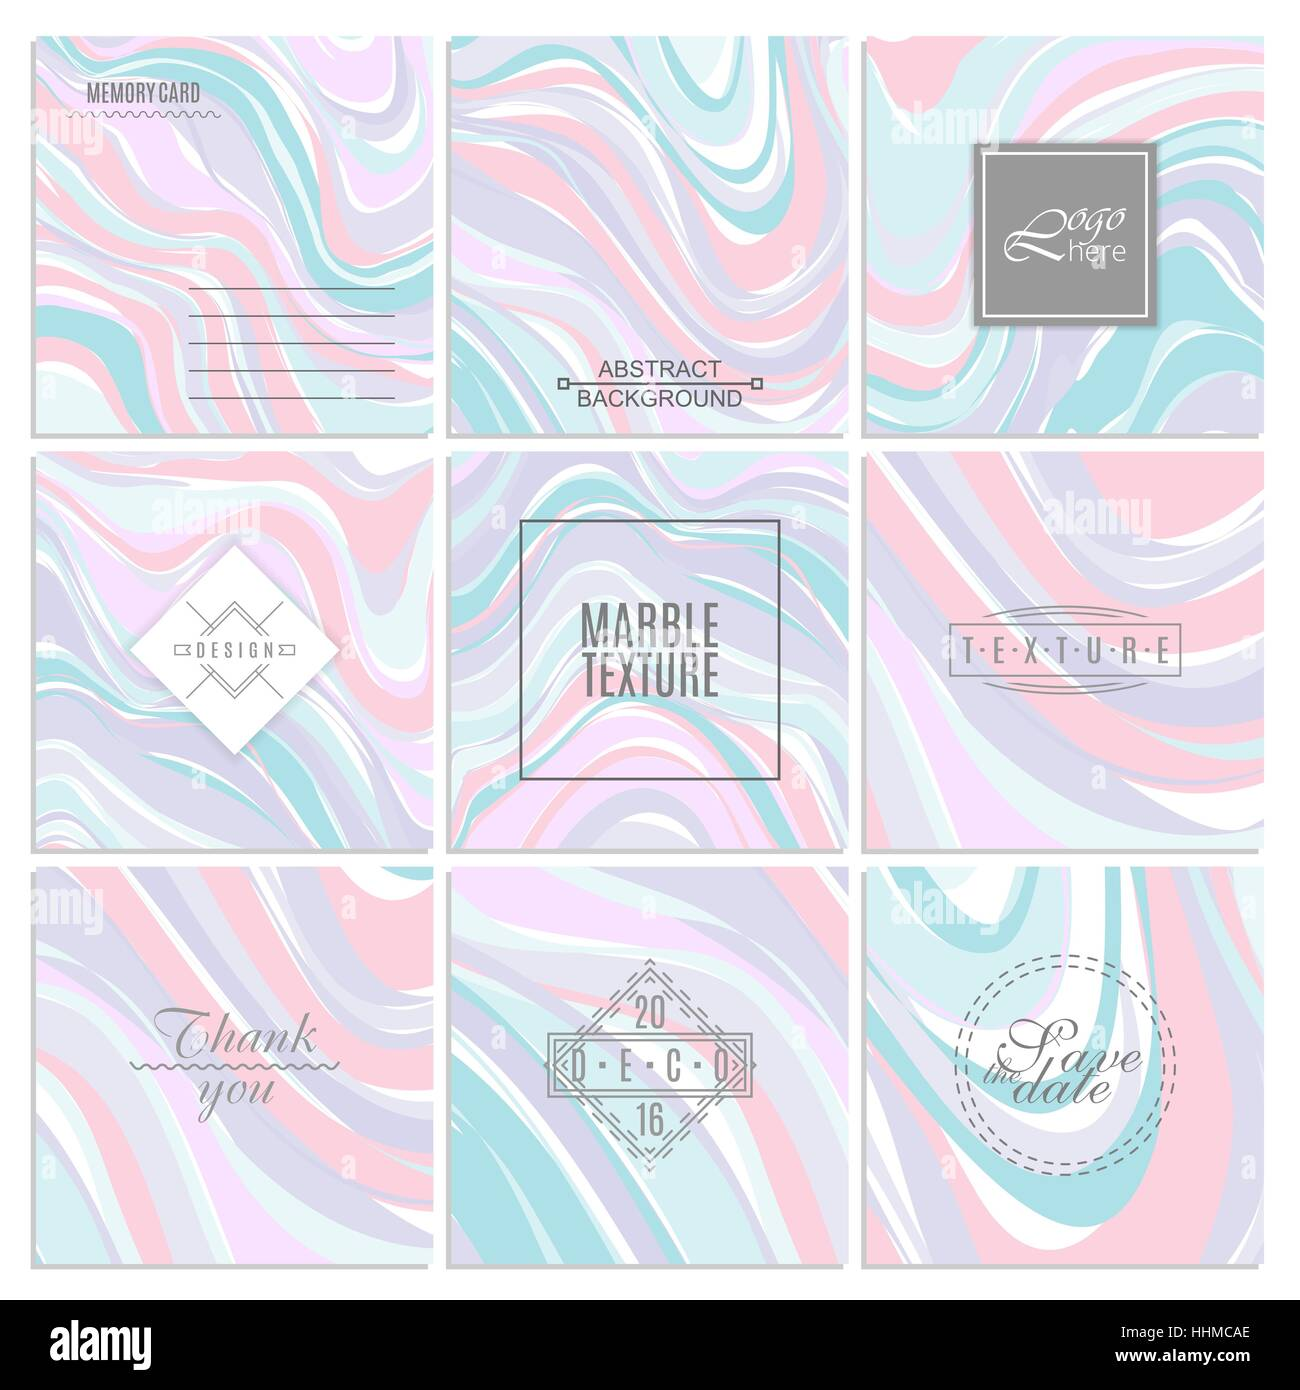 Abstract Creative Card Templates Weddings Menu Invitations Birthday Business Cards With Marble Texture In Trendy Colors